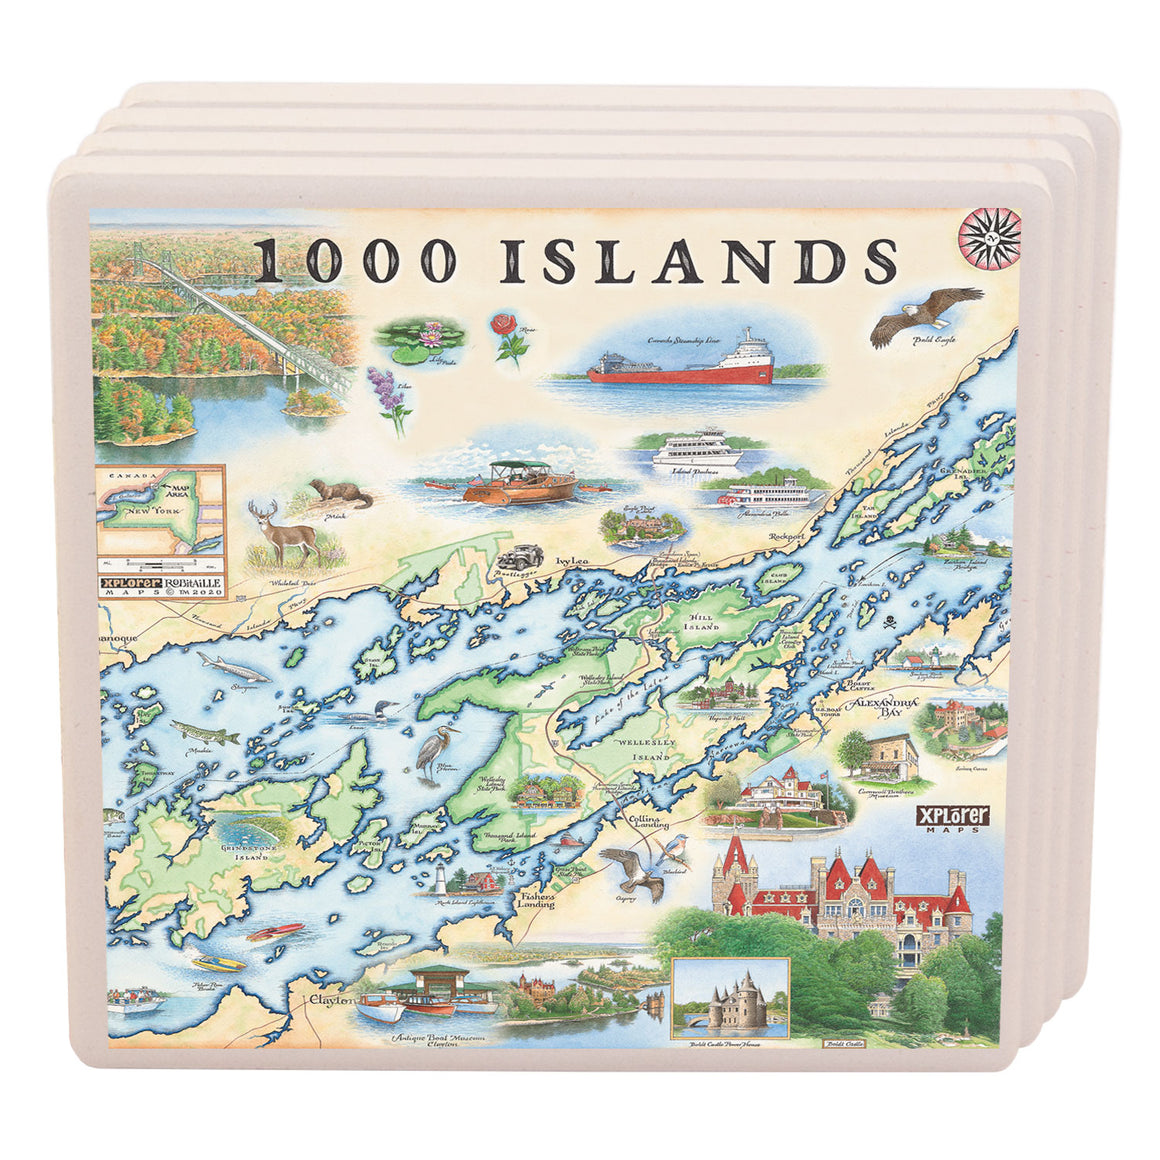 1000 Islands Ceramic Coasters